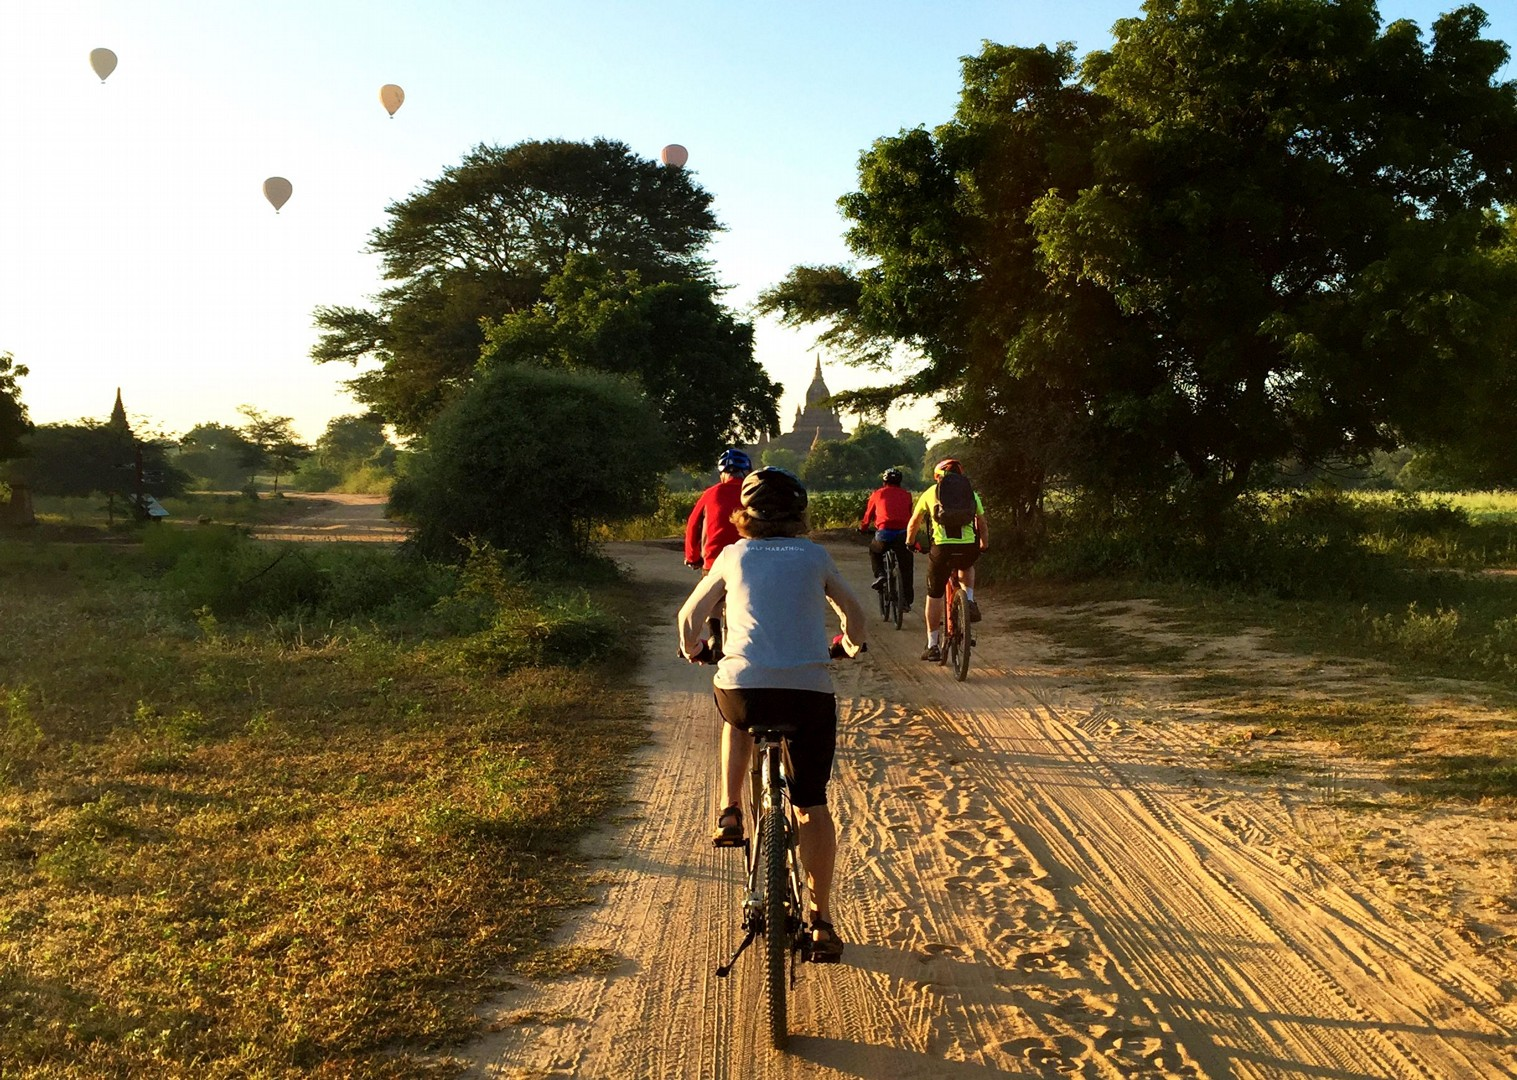 guided-group-cycling-adventure-burma.jpg - Burma - Bagan and Beyond - Cycling Adventures